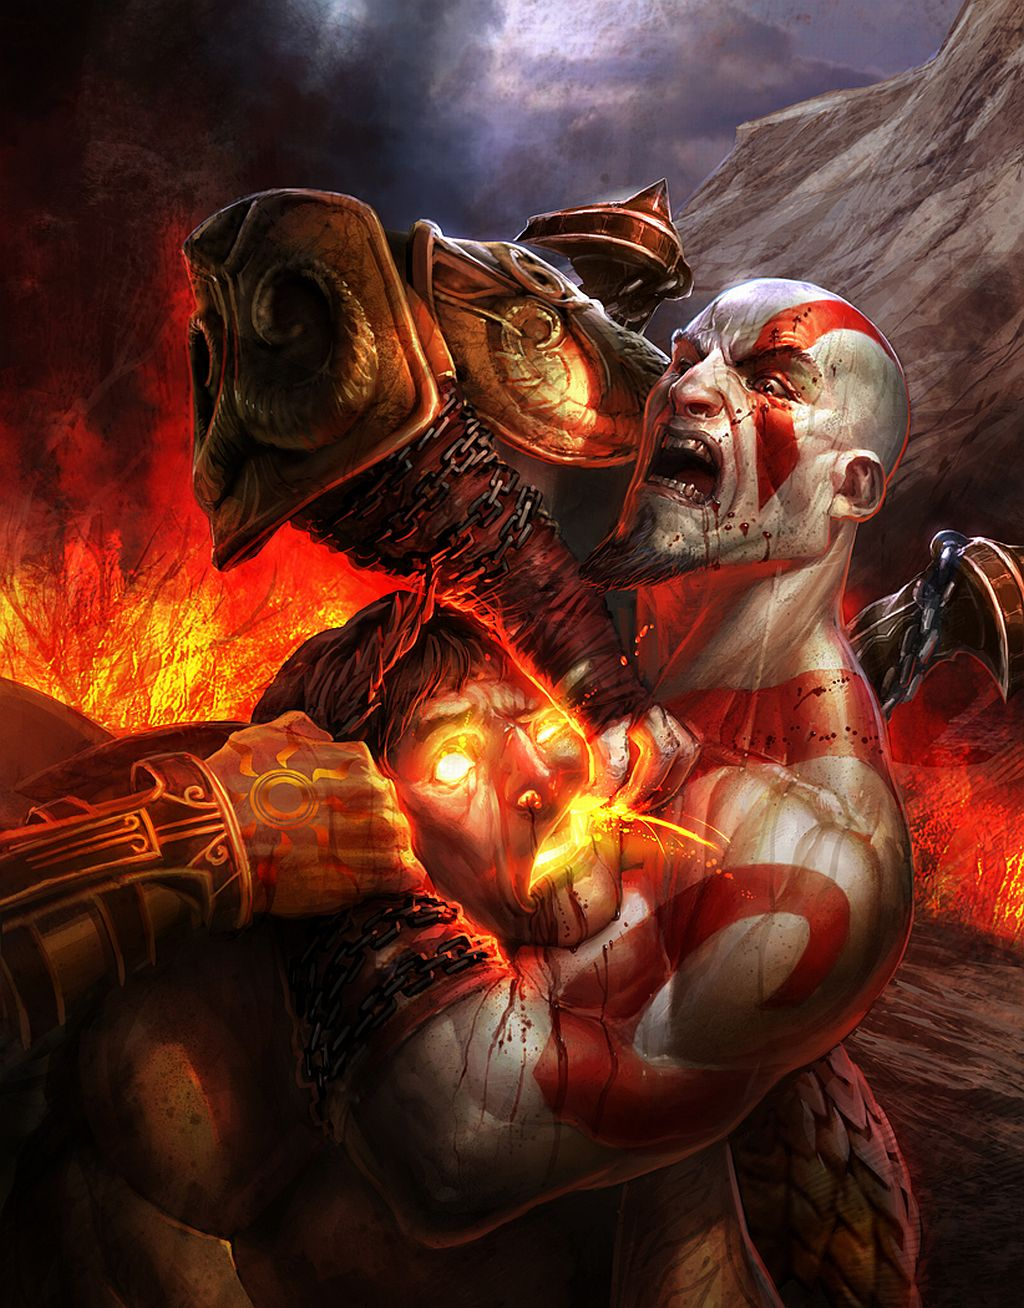 Арт к игре God of War III